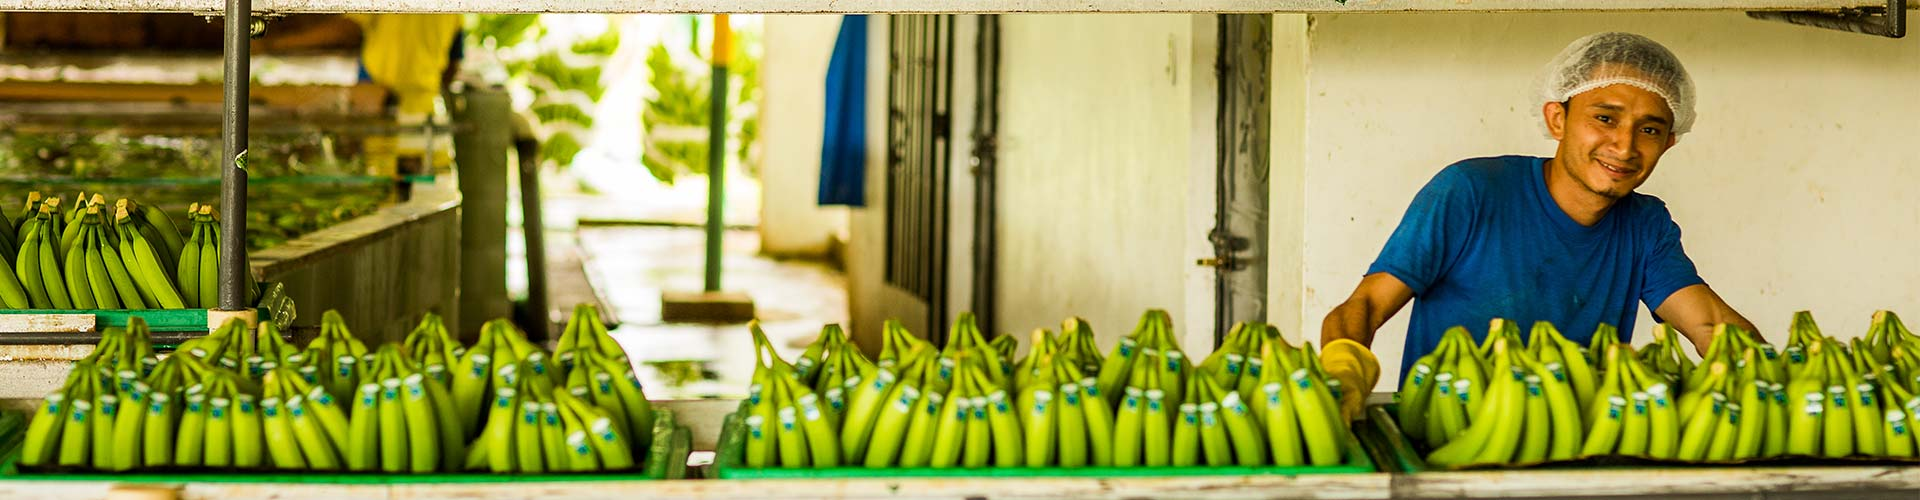 AgroFair-Fairtrade-Bio-Organic-Bananas-Fruit-home-slider-01